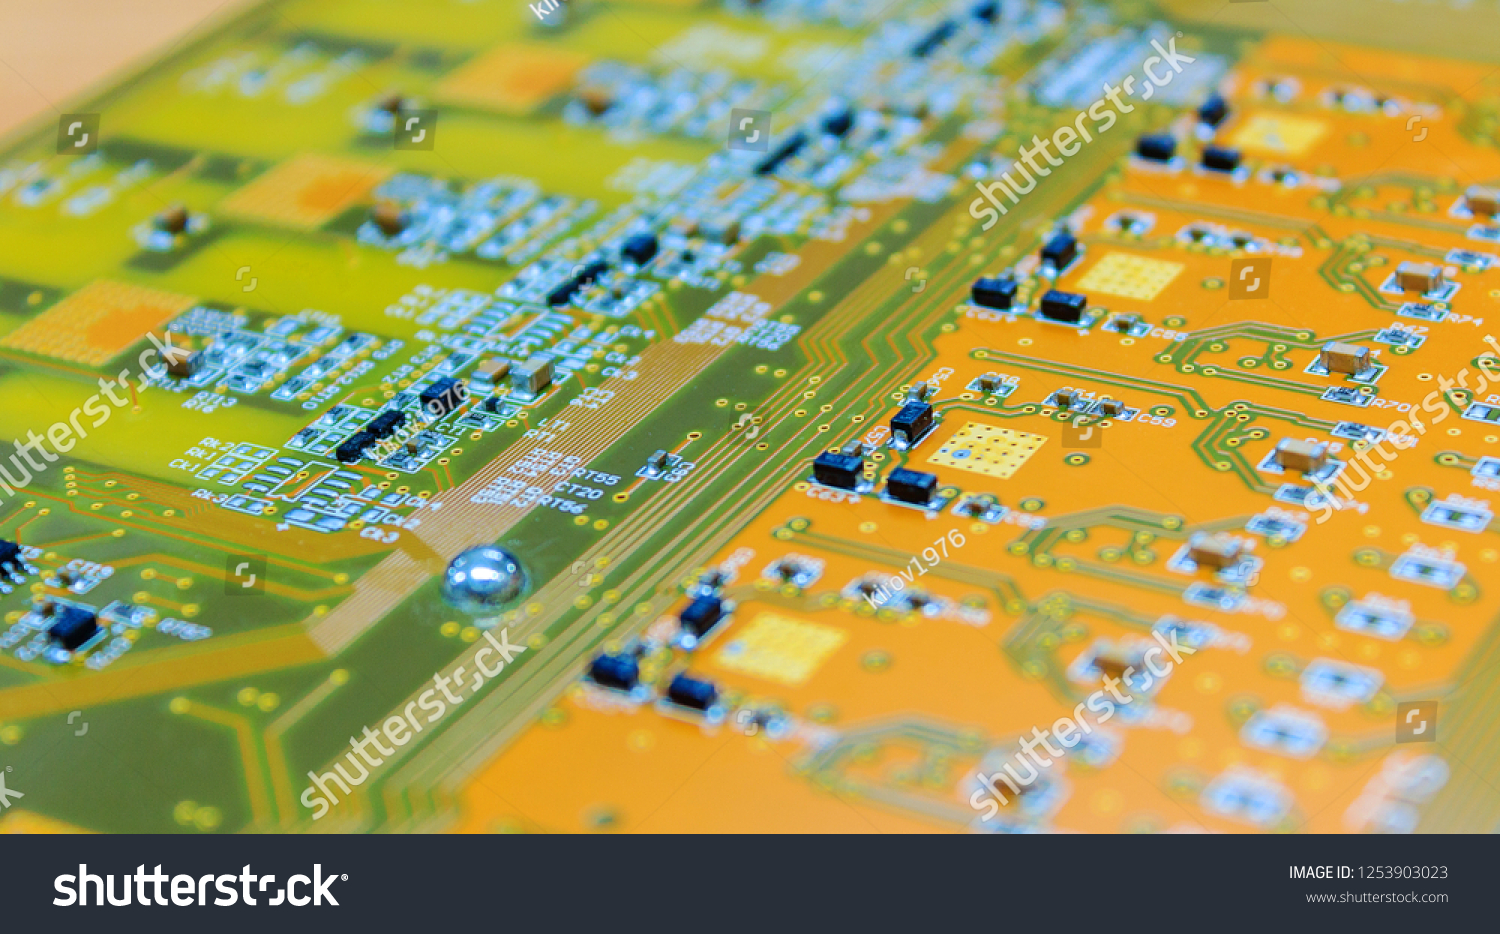 Printed Circuit Board Close Background Stock Photo Edit Now Photos Images Pictures Shutterstock Up For